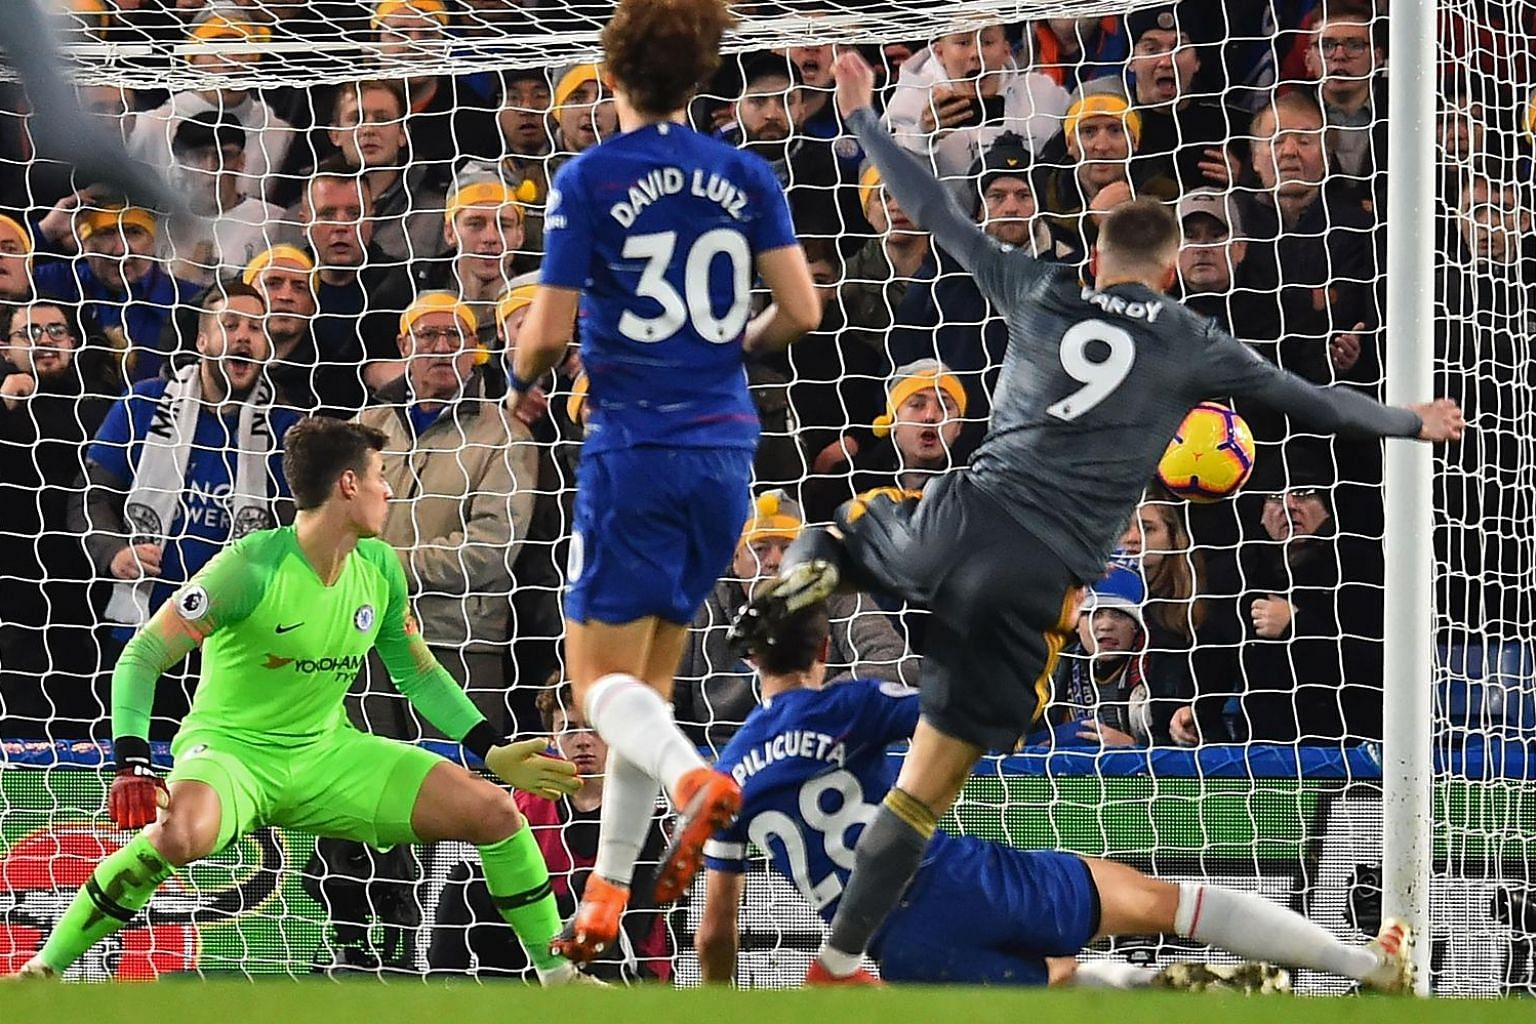 Leicester City's Jamie Vardy scoring the only goal in their English Premier League match against Chelsea on Saturday, the Blues' first home loss of the season.